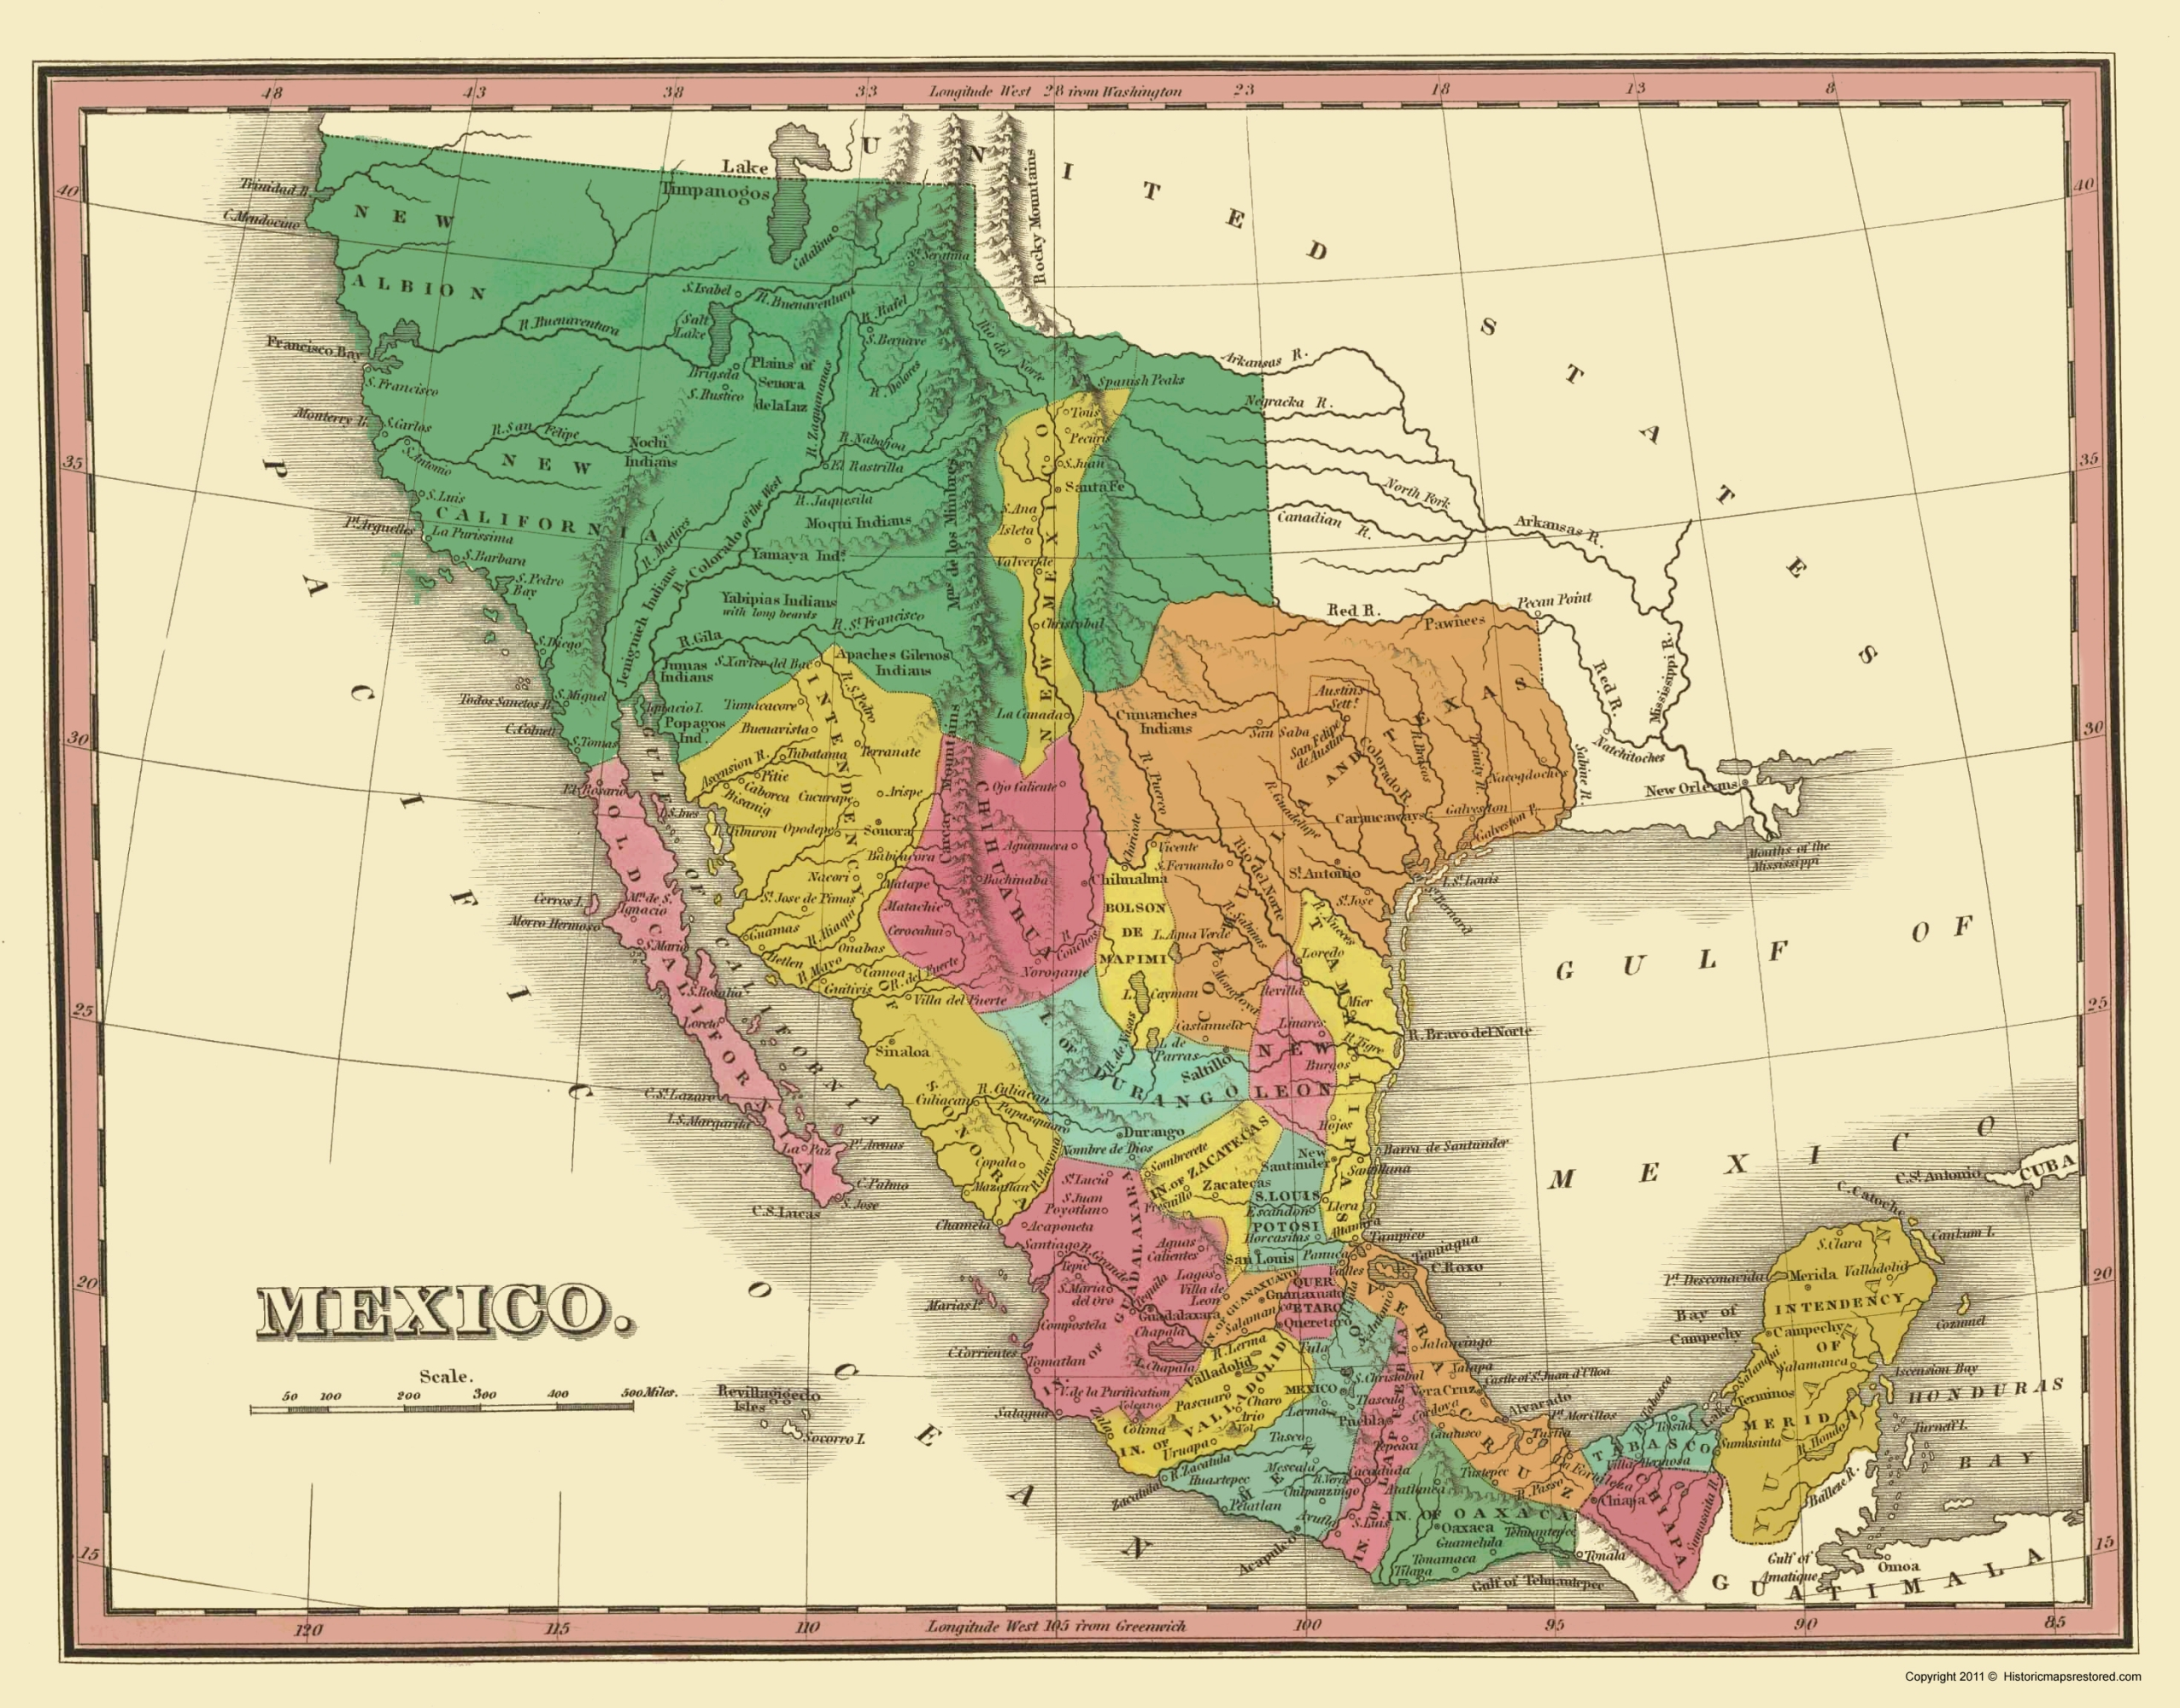 Old Mexico Map   Mexico with Territories Finley 1831